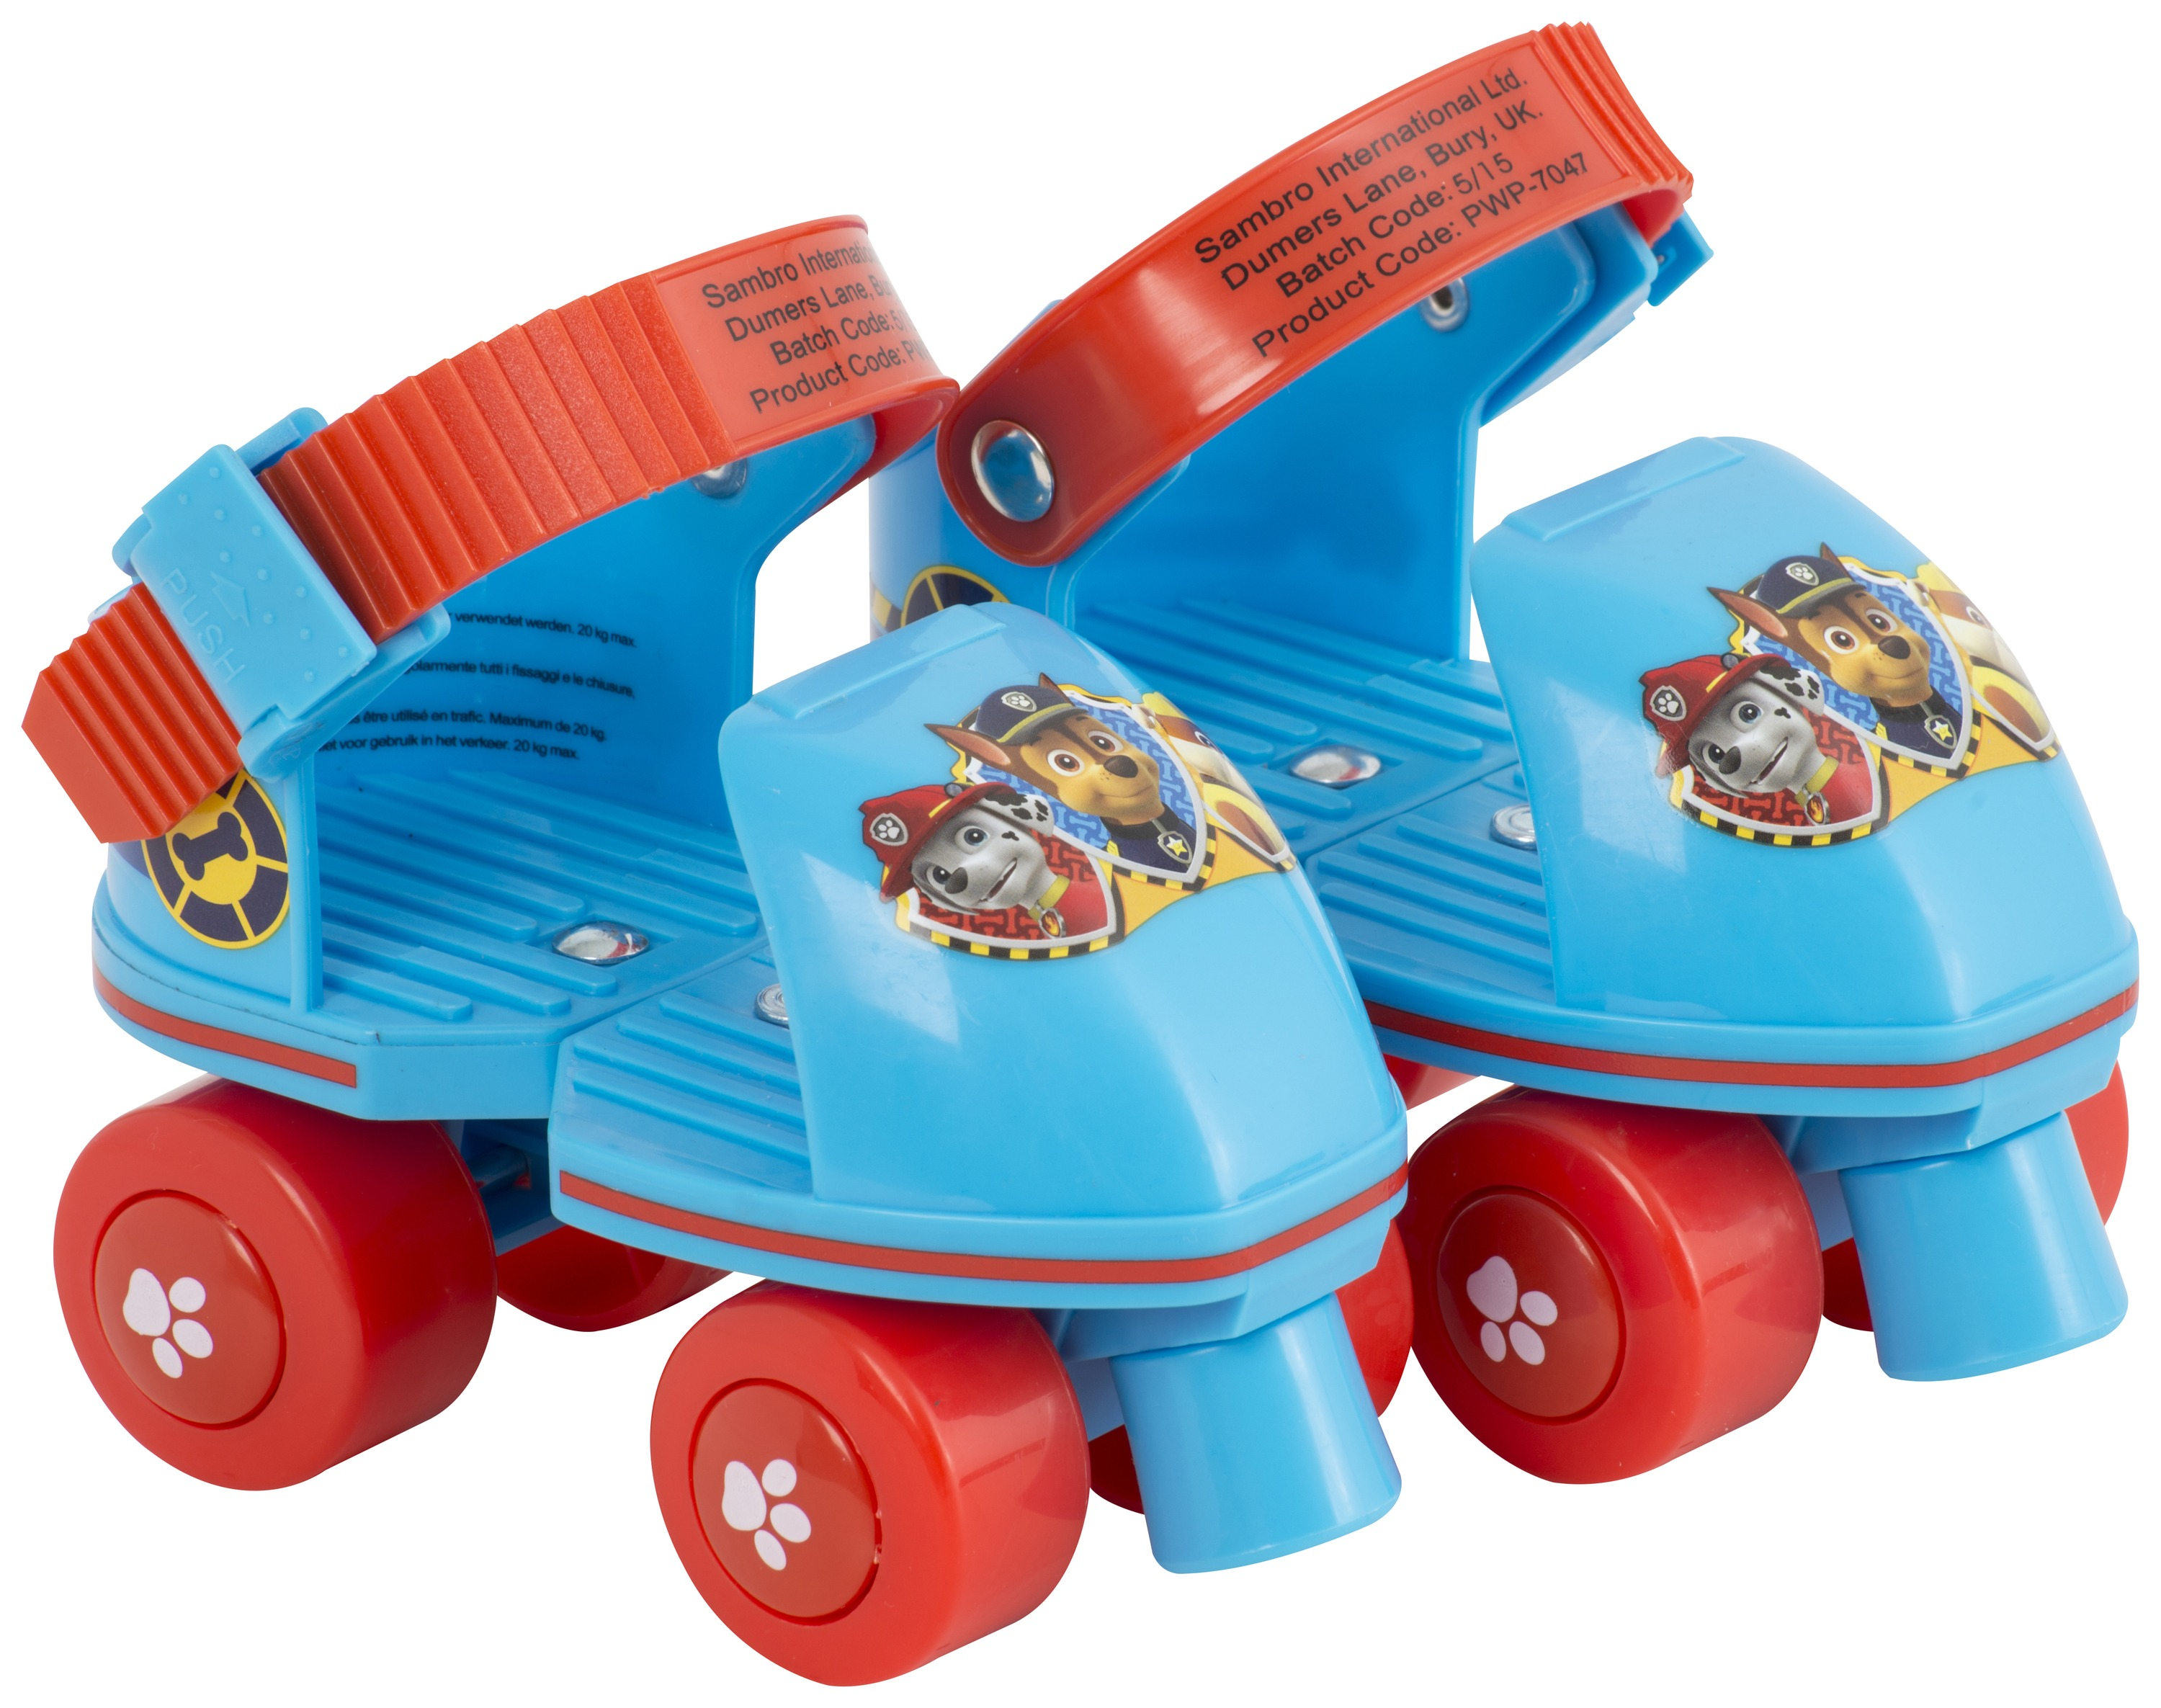 Rollerblades And Toys : New paw patrol childrens kids toddler adjustable size